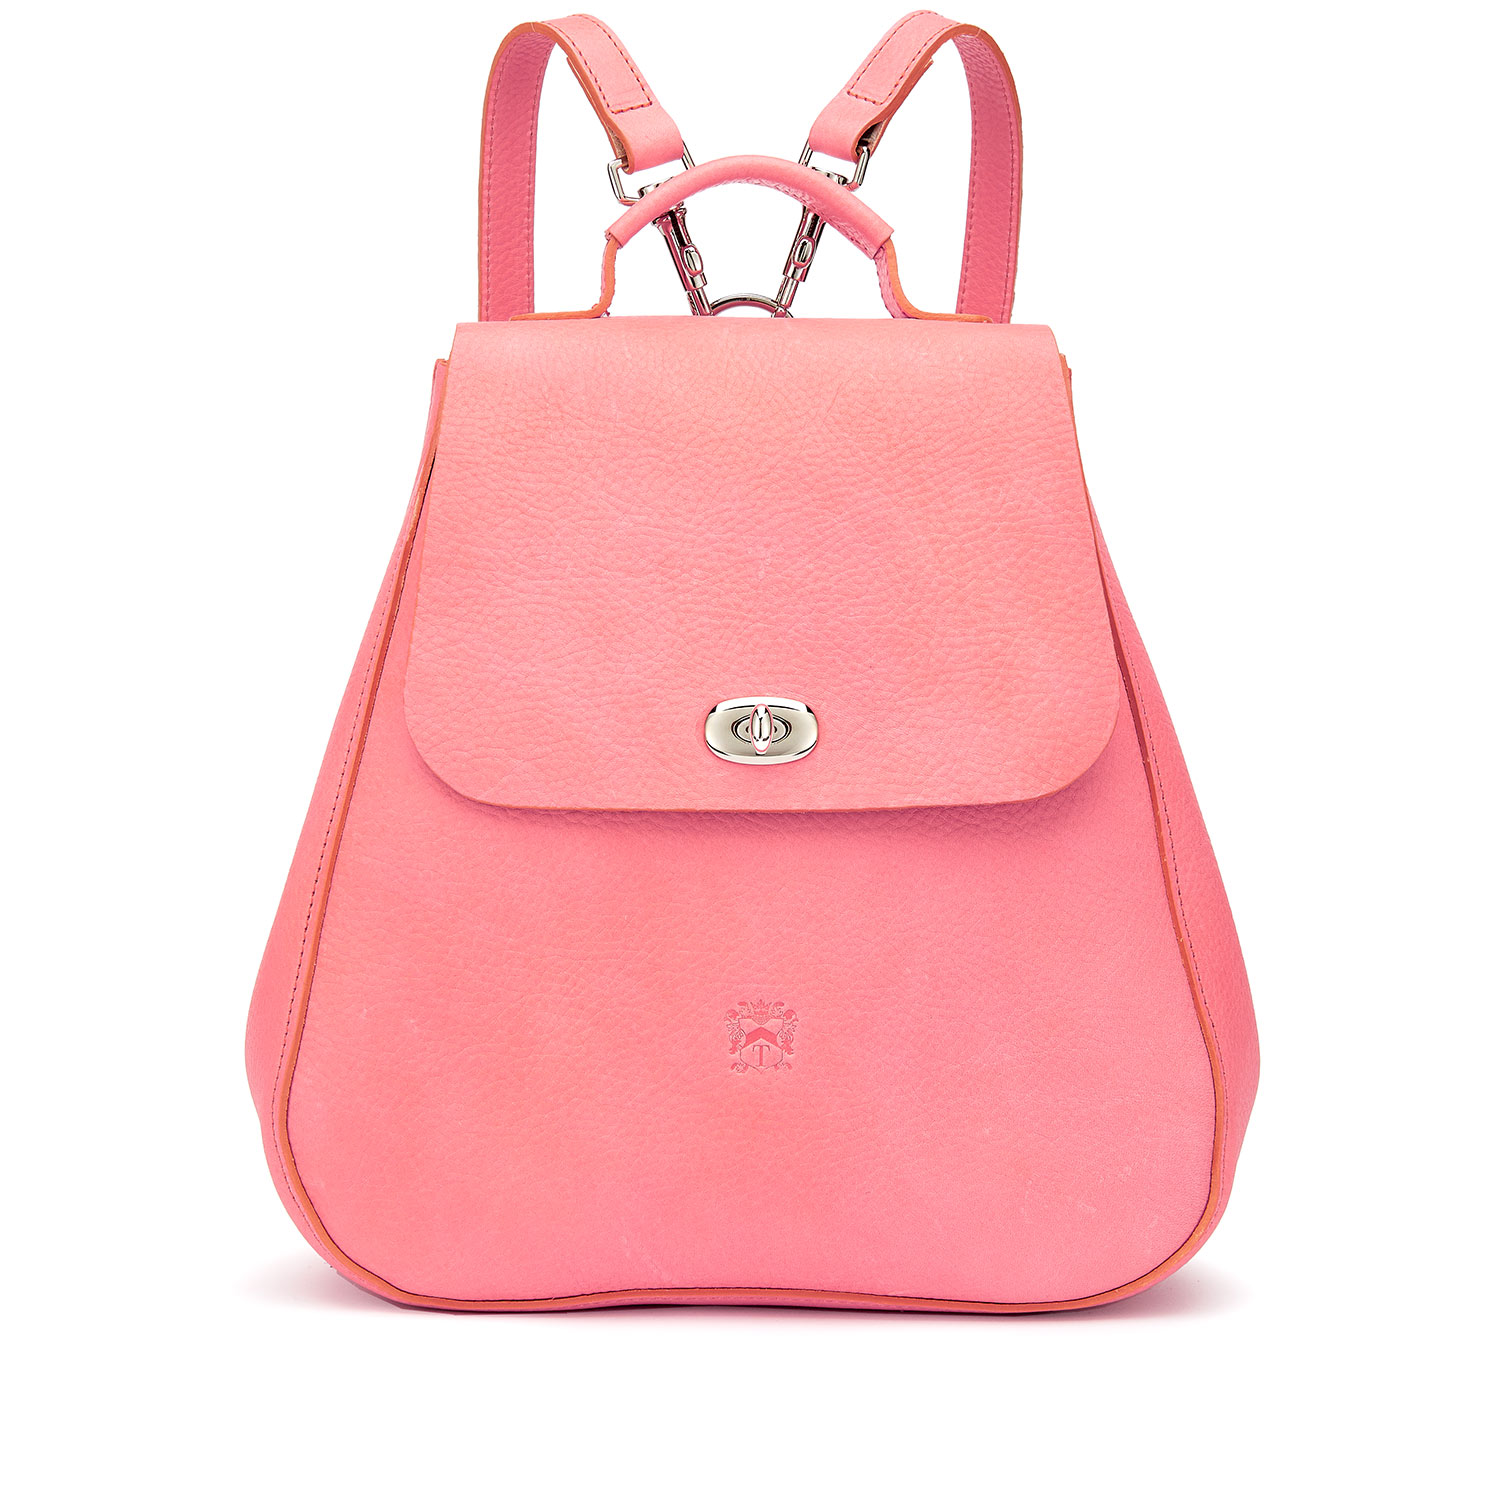 Tusting Eliza Leather Backpack in Cherry Blossom